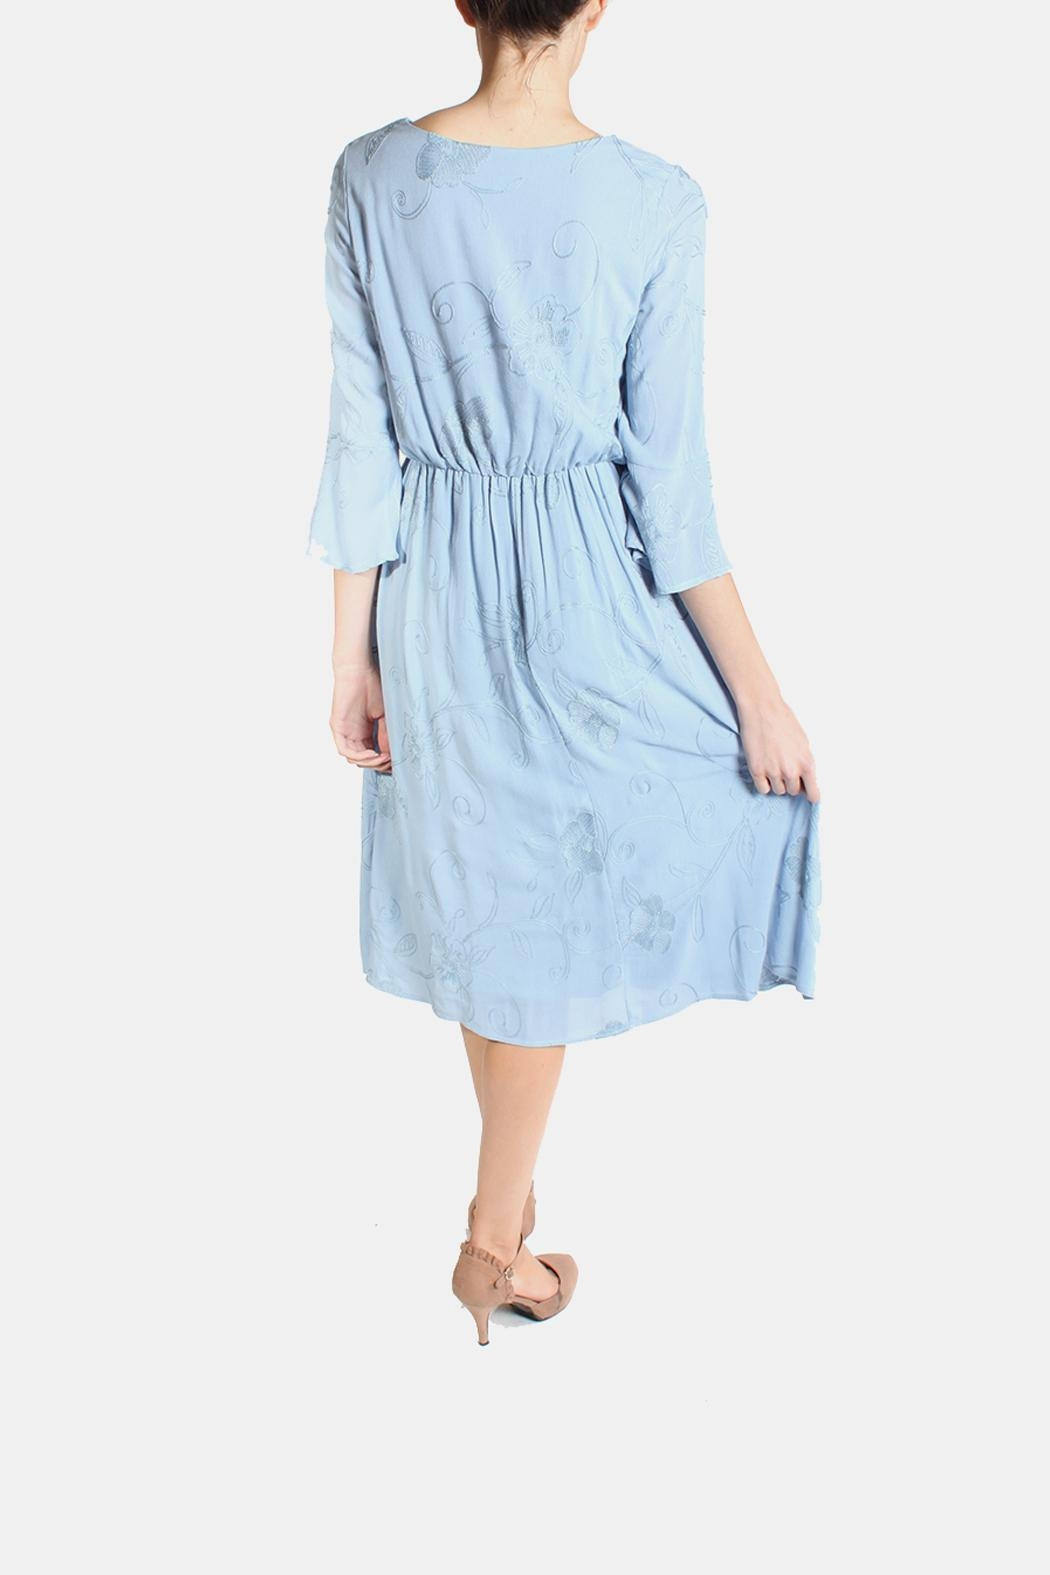 Le Lis Dreamy Blue Embroidered Dress - Back Cropped Image